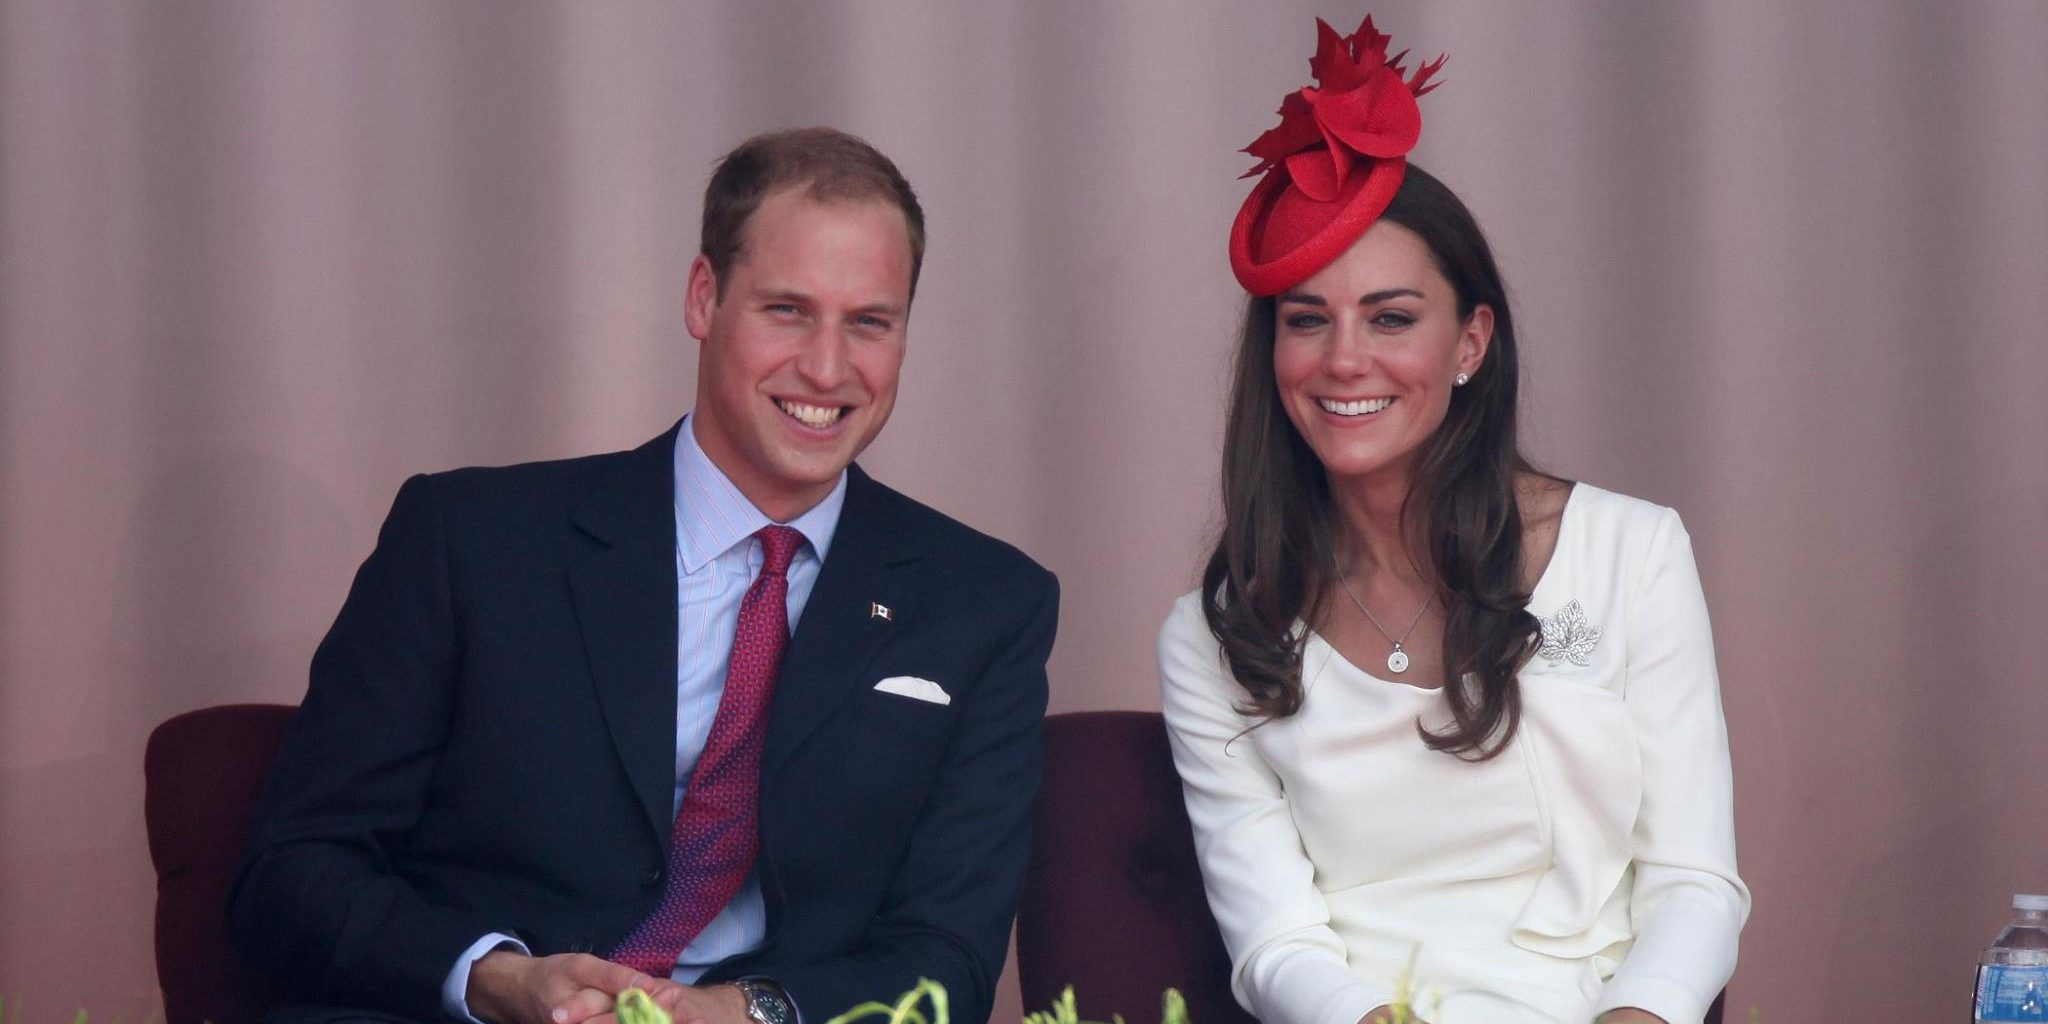 Prince William and the Duchess of Cambridge are coming to BC